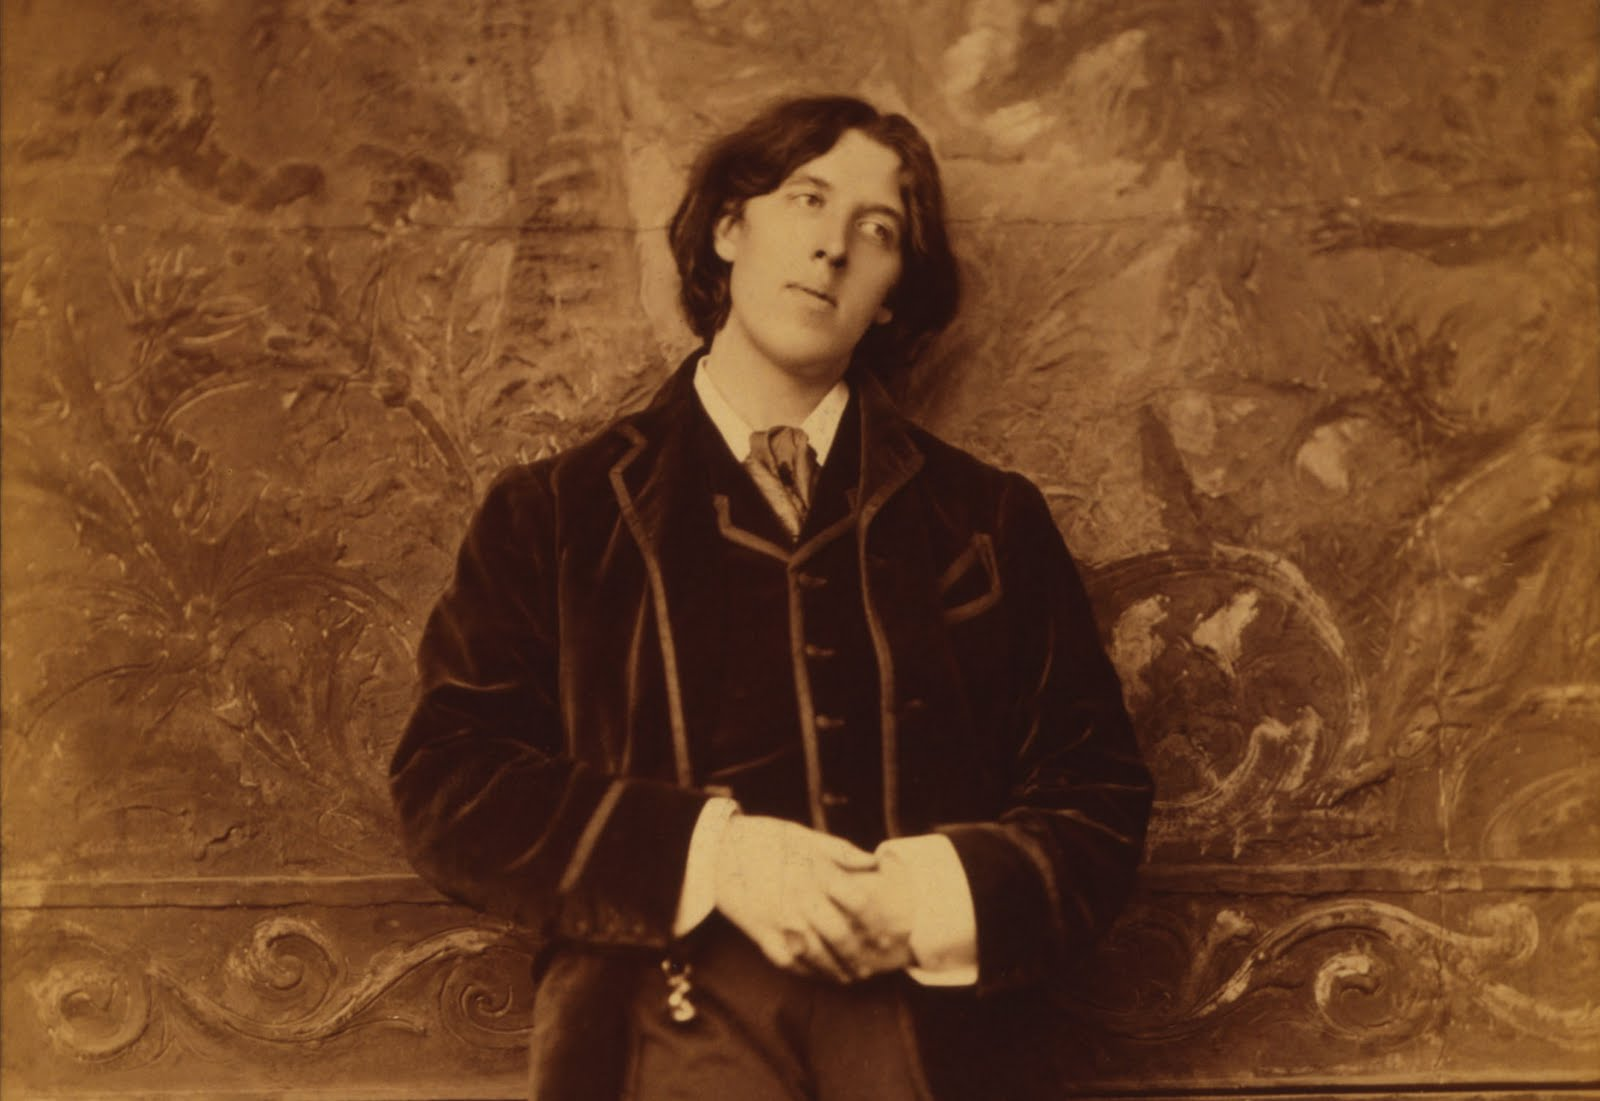 a biography of oscar wilde The life of oscar wilde (1854-1900), with a summary of his best-known comedies, such as the importance of being earnest.